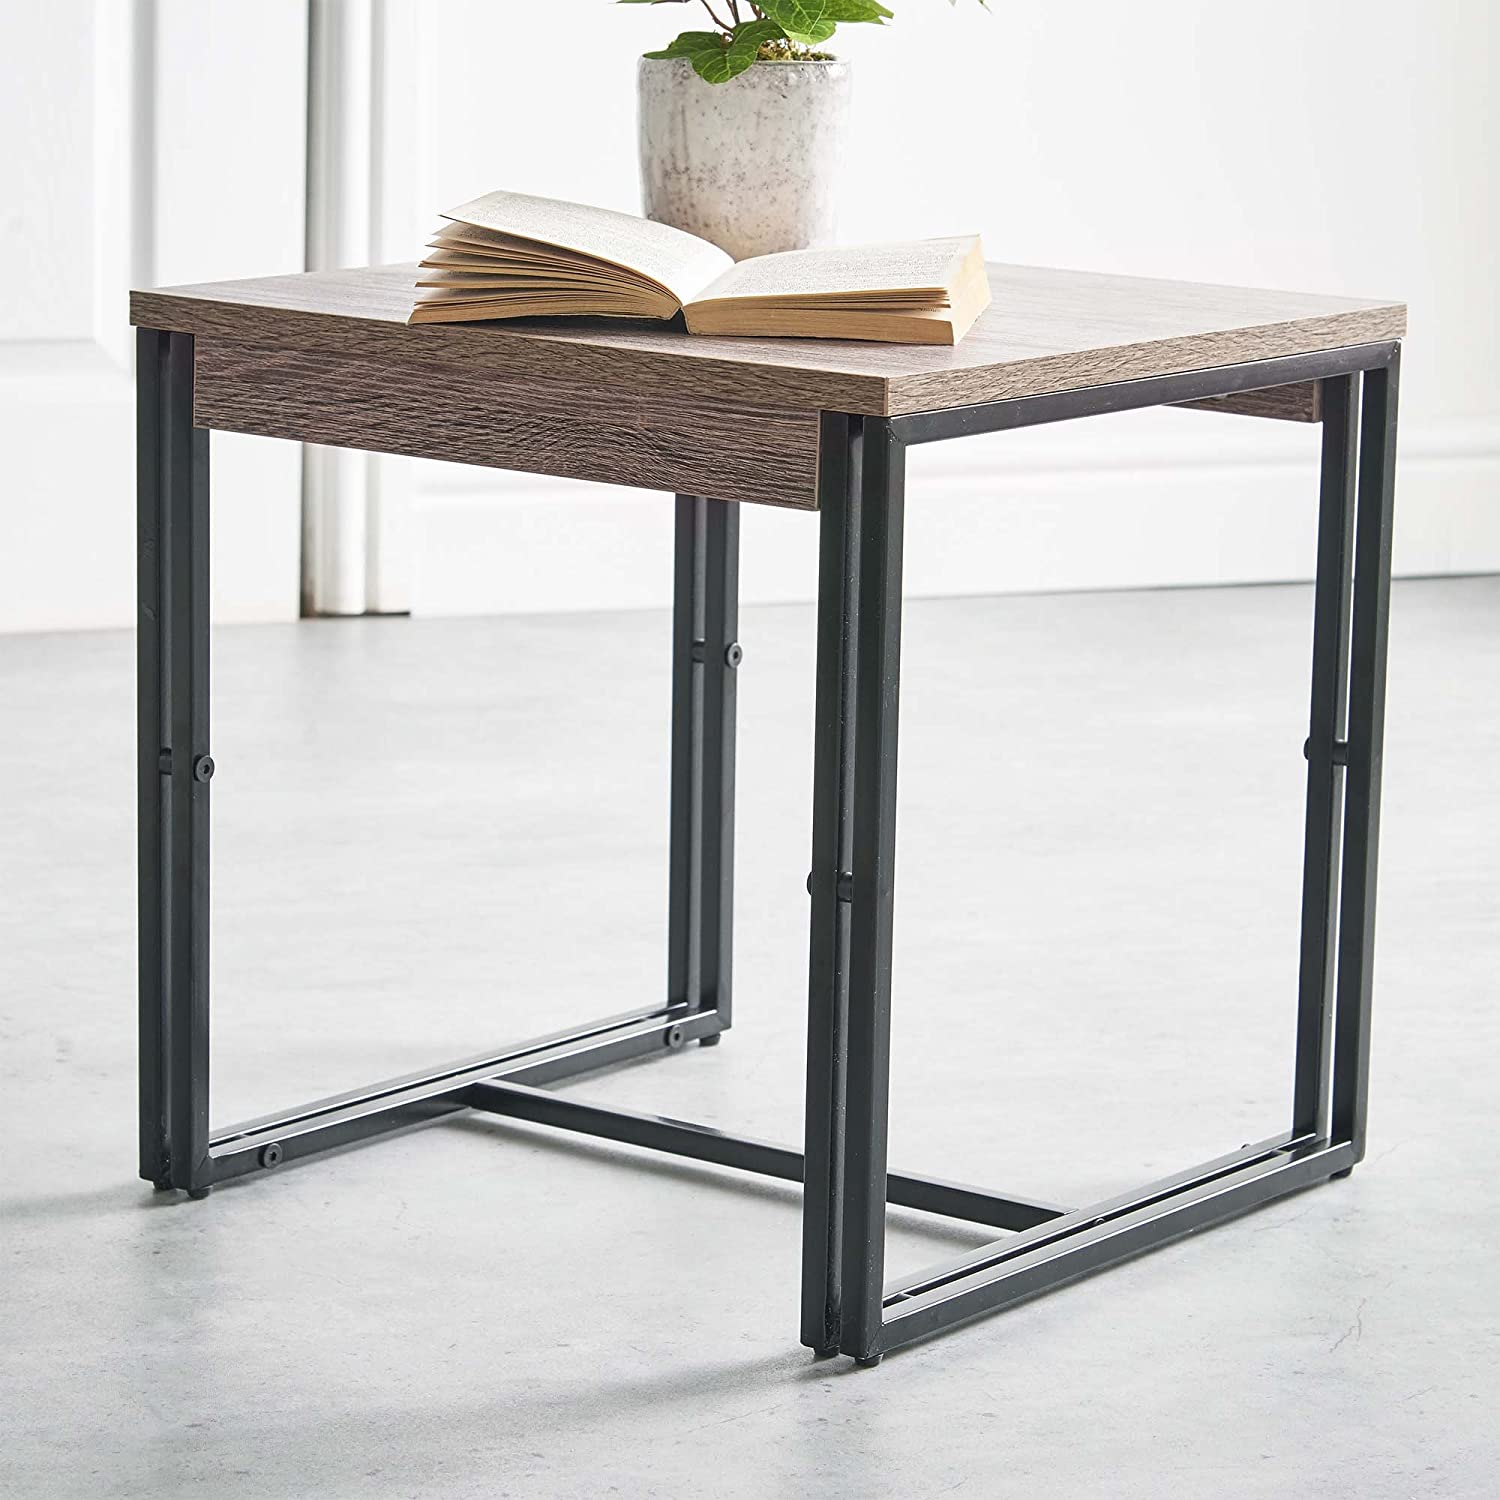 Sidetable 200 Cm Breed.Vonhaus Rustic Side Table Modern Industrial Design Wooden Effect End Table Nightstand Bedside Or Telephone Table Lounge Dining Or Living Room